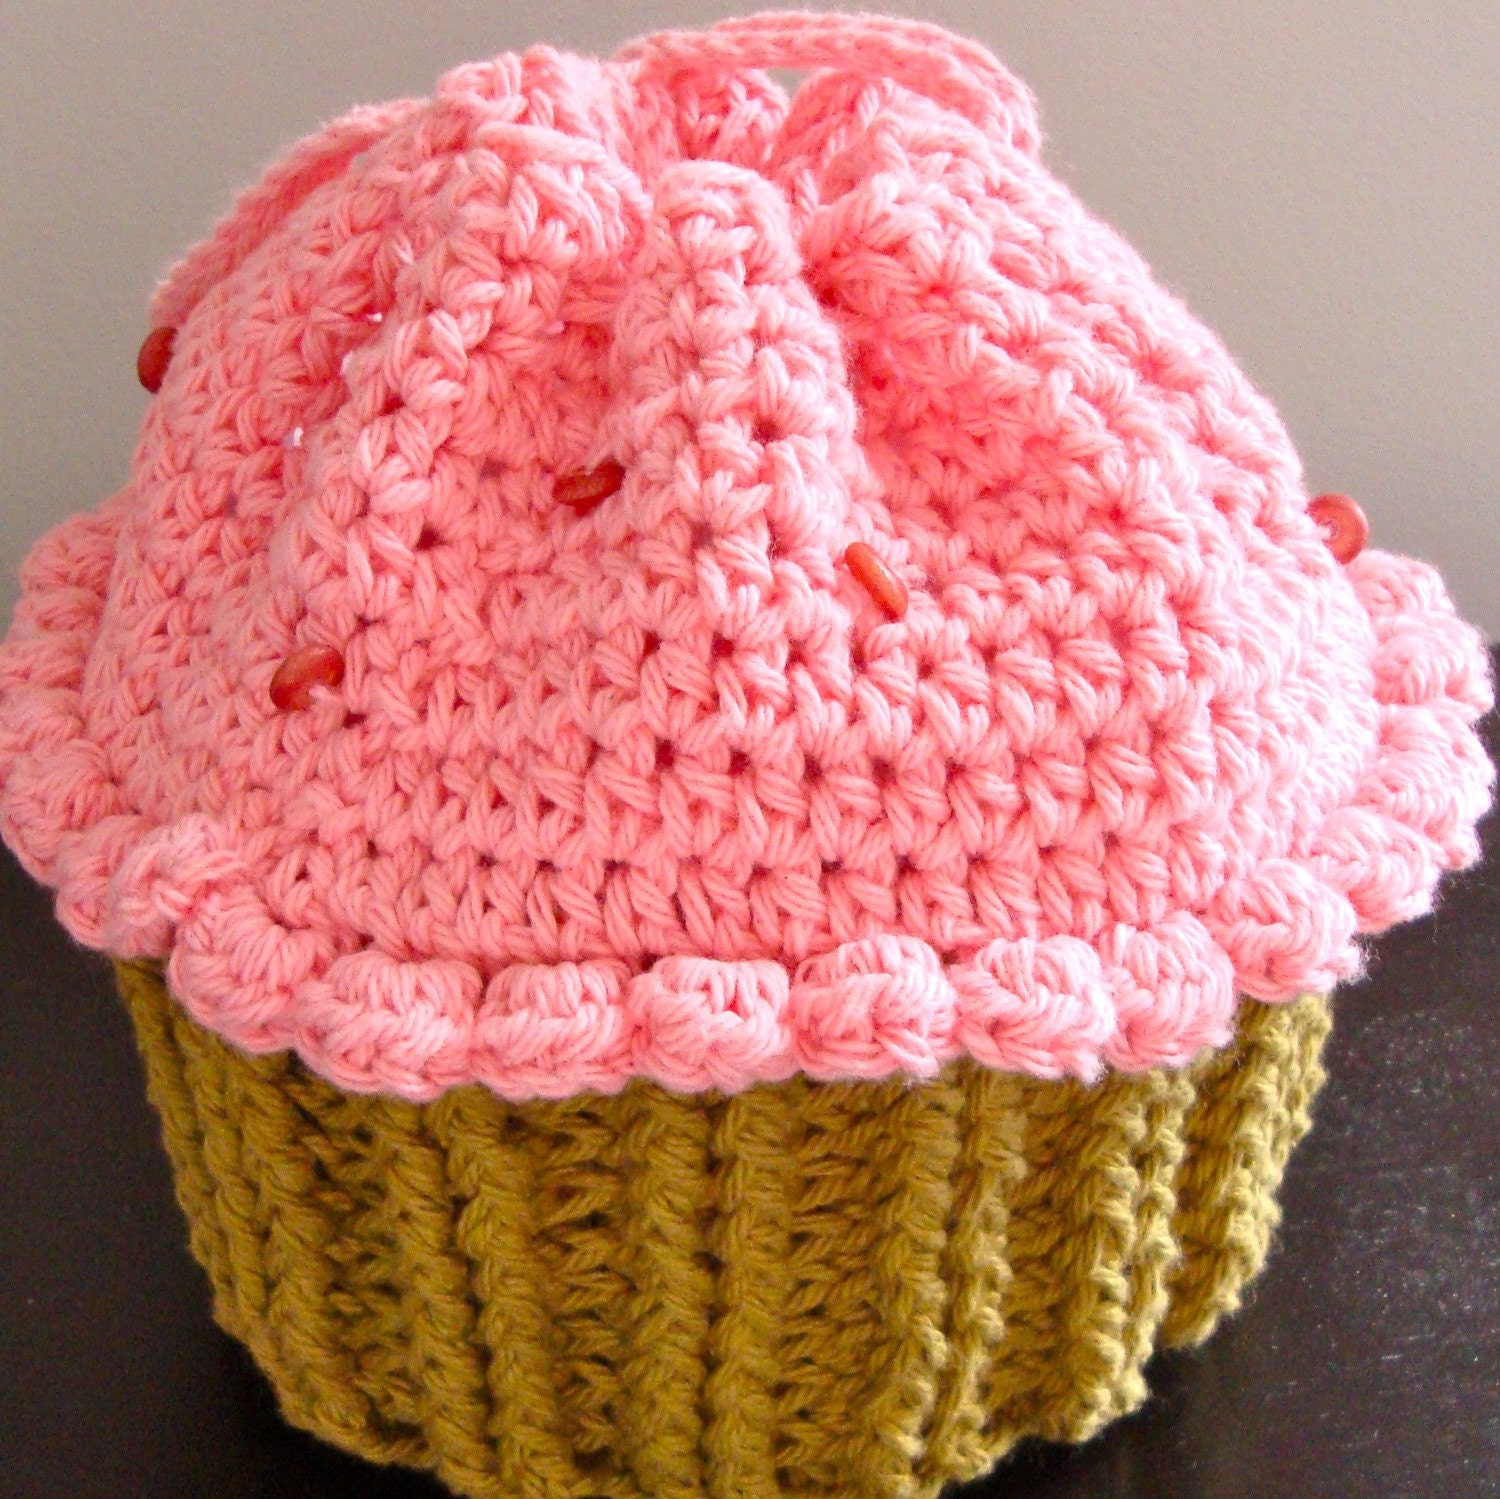 Crochet Child s Bag Pattern : CROCHET CUPCAKE PURSE-No. 32 by DesignsbyLilly by ...